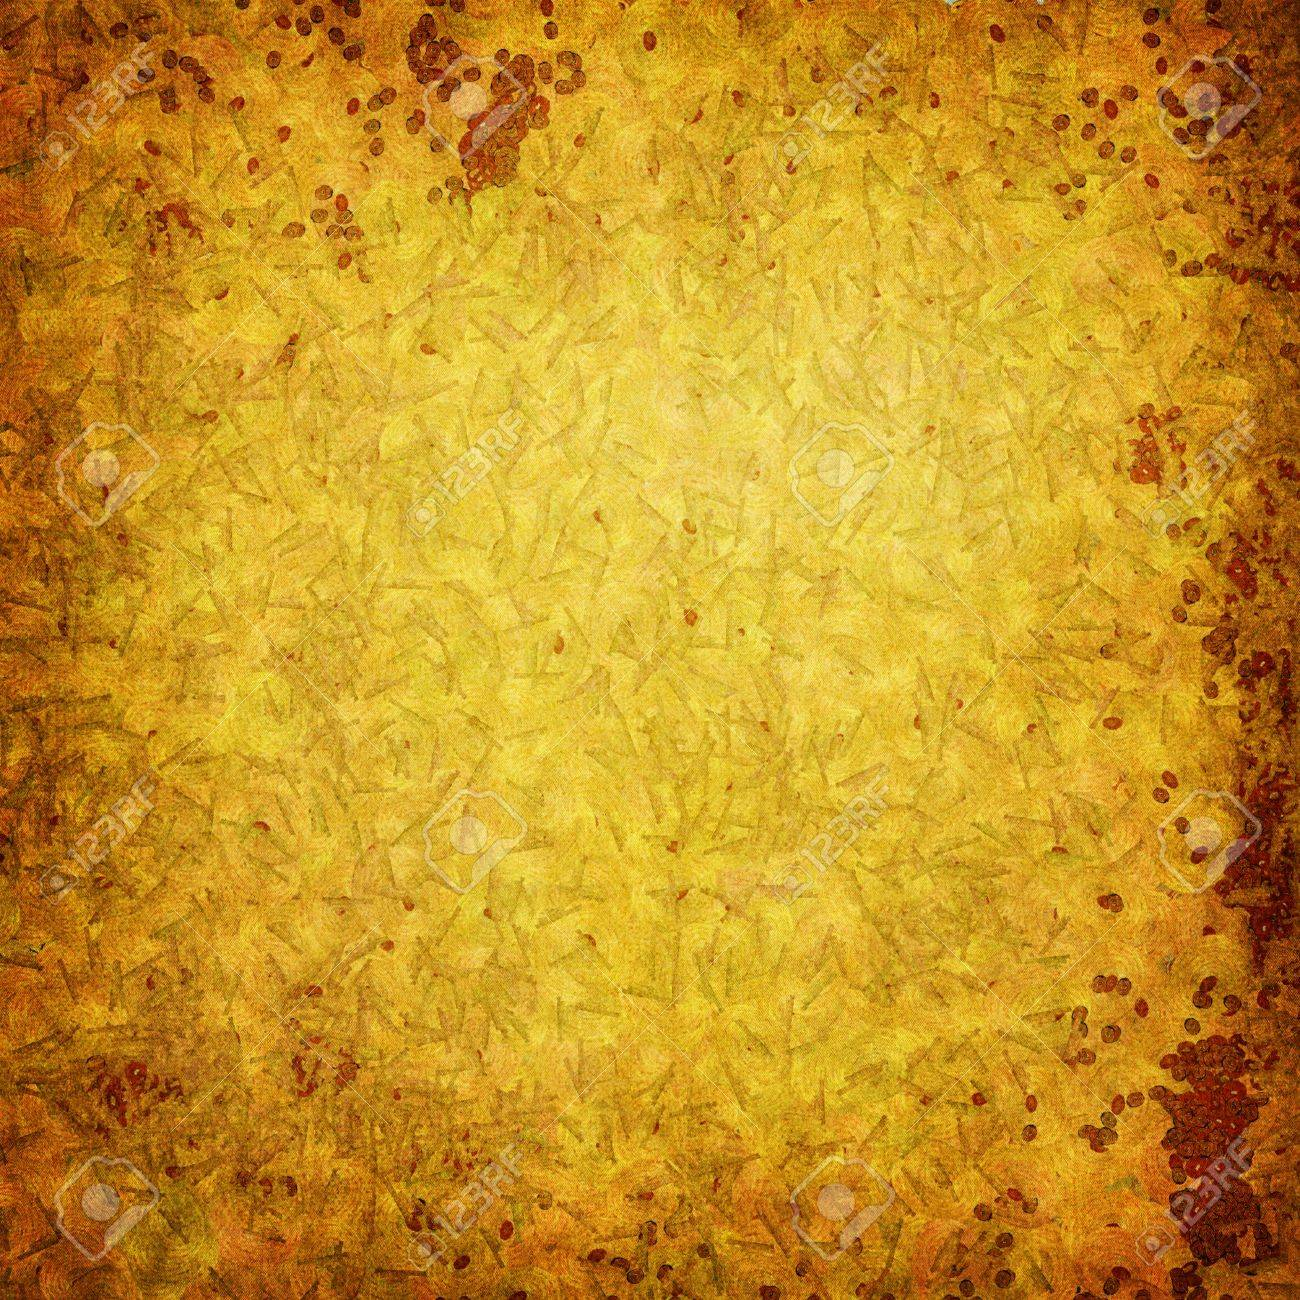 Highly detailed brown and yellow grunge background or paper with vintage texture and space for your text, image or border frame Stock Photo - 17438346